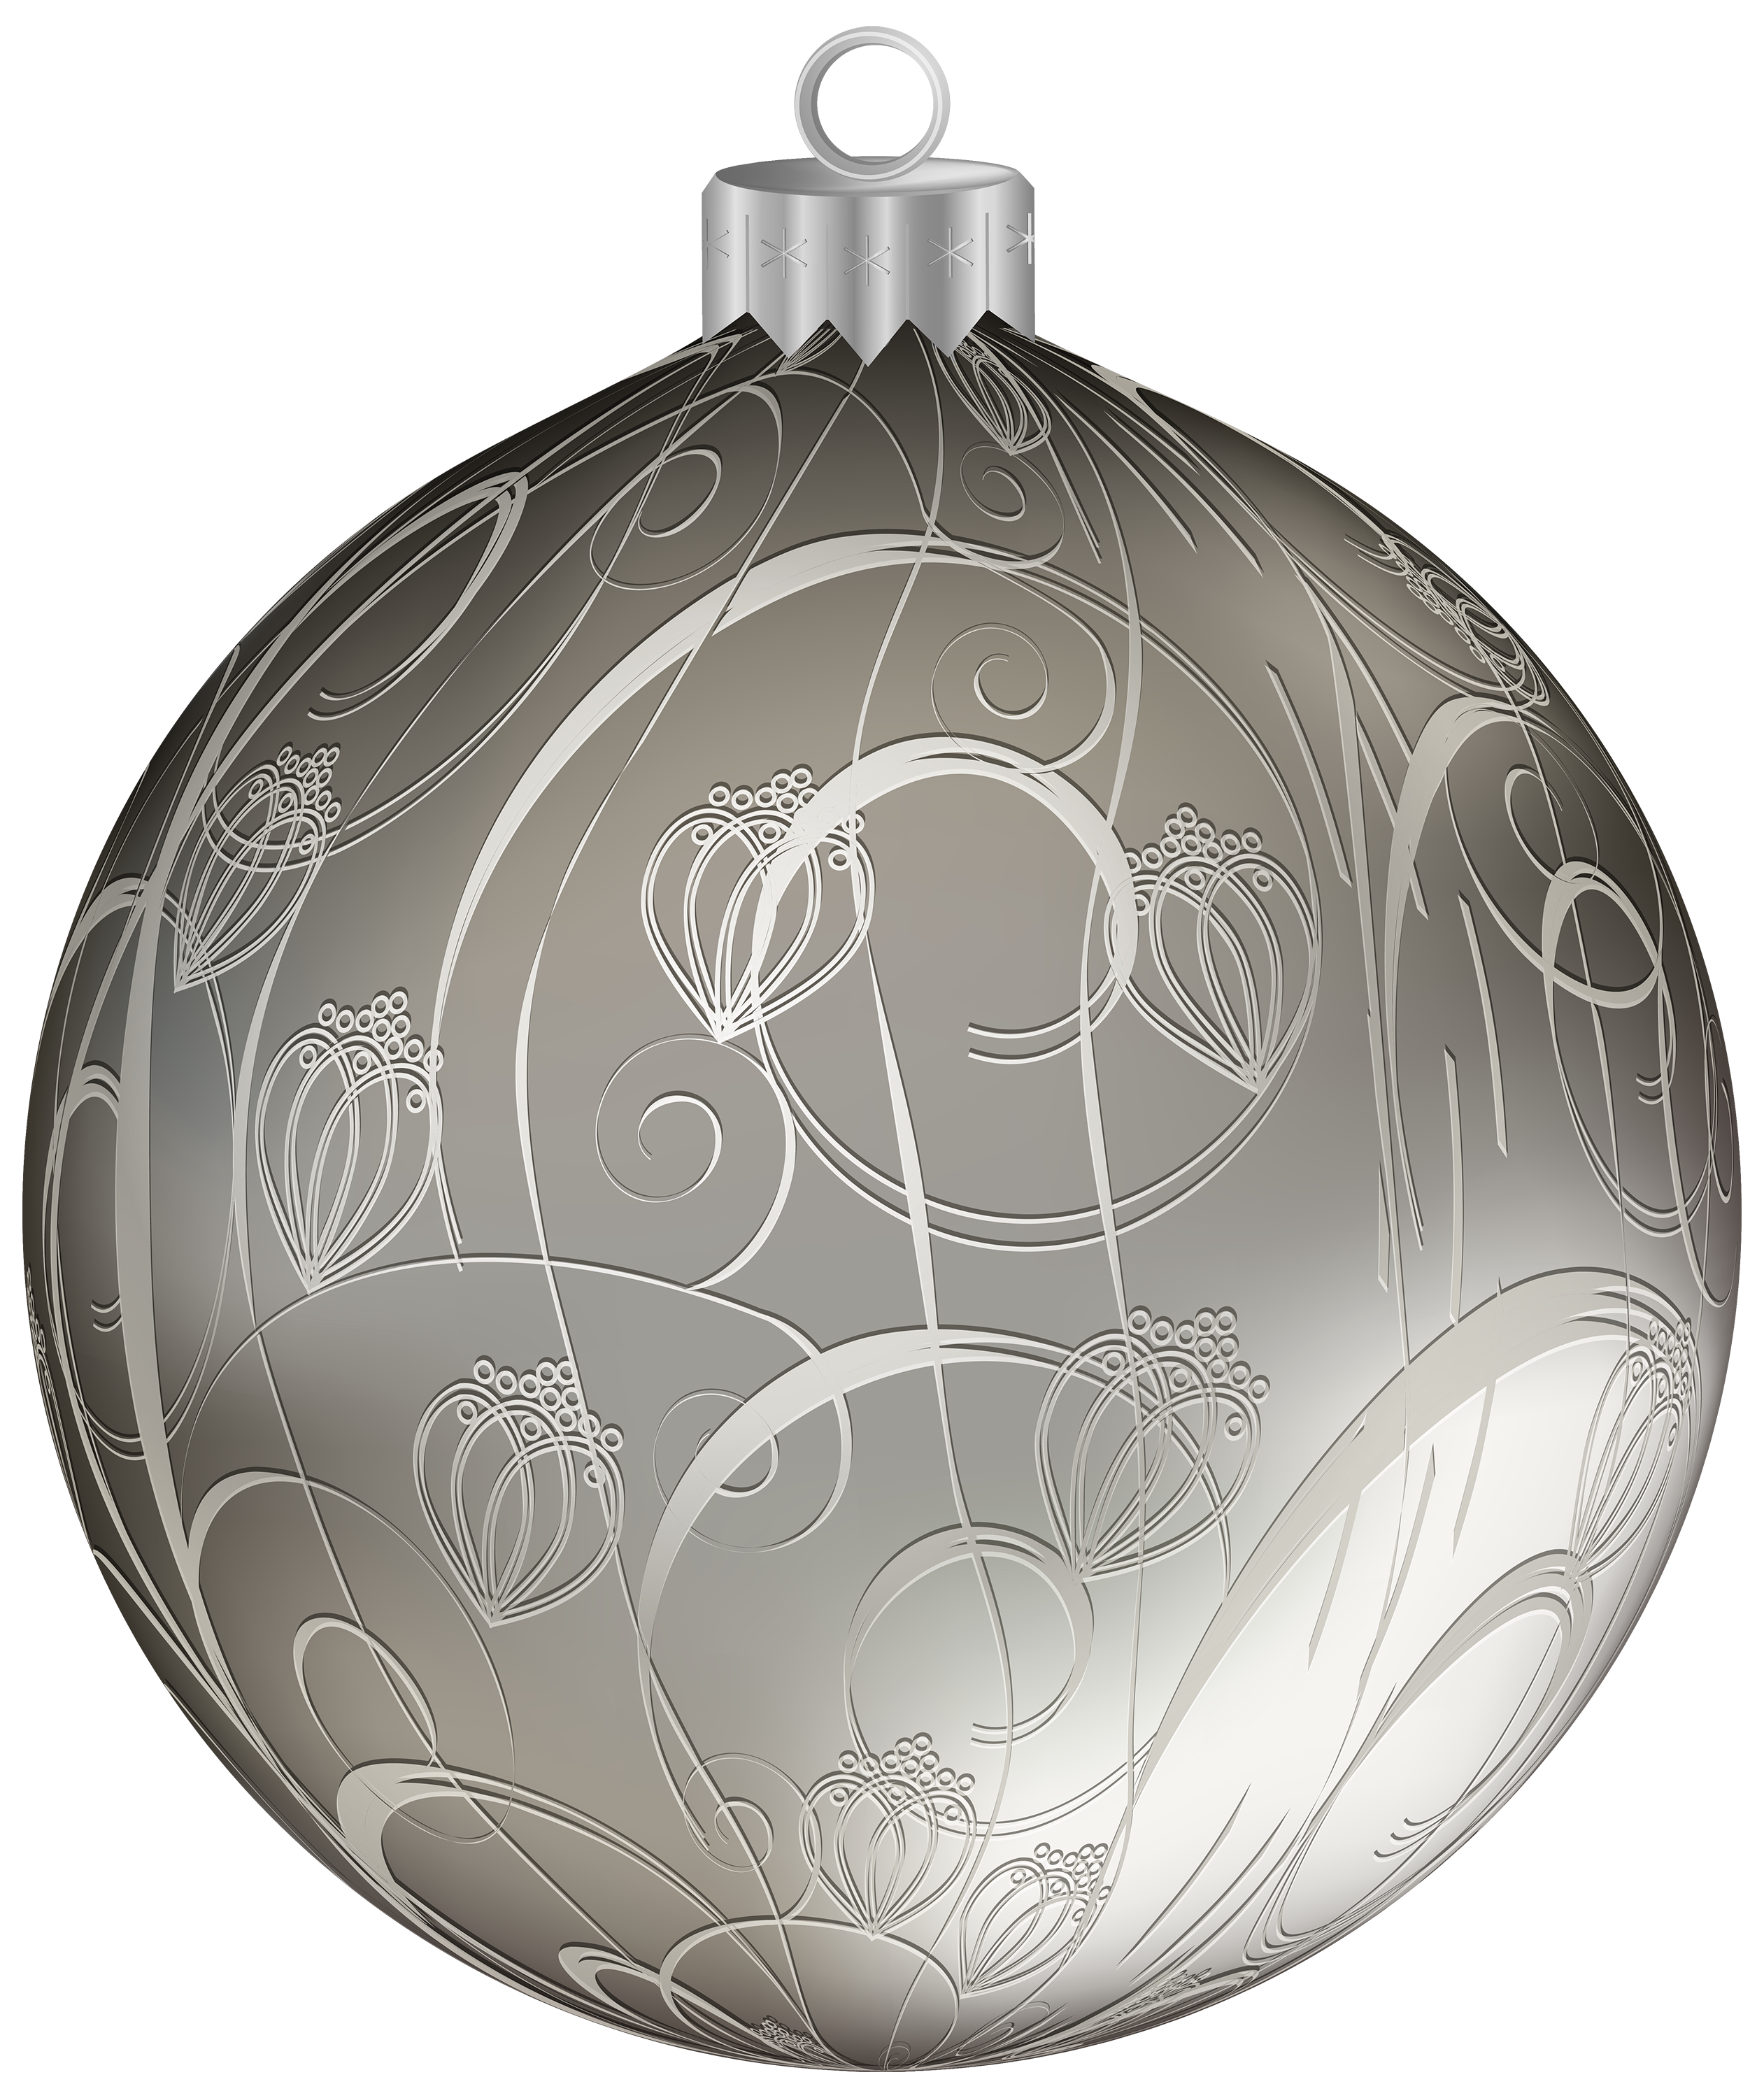 Silver Ornament Png - Silver Christmas Ball with Ornaments PNG Clipart Image | Gallery ...